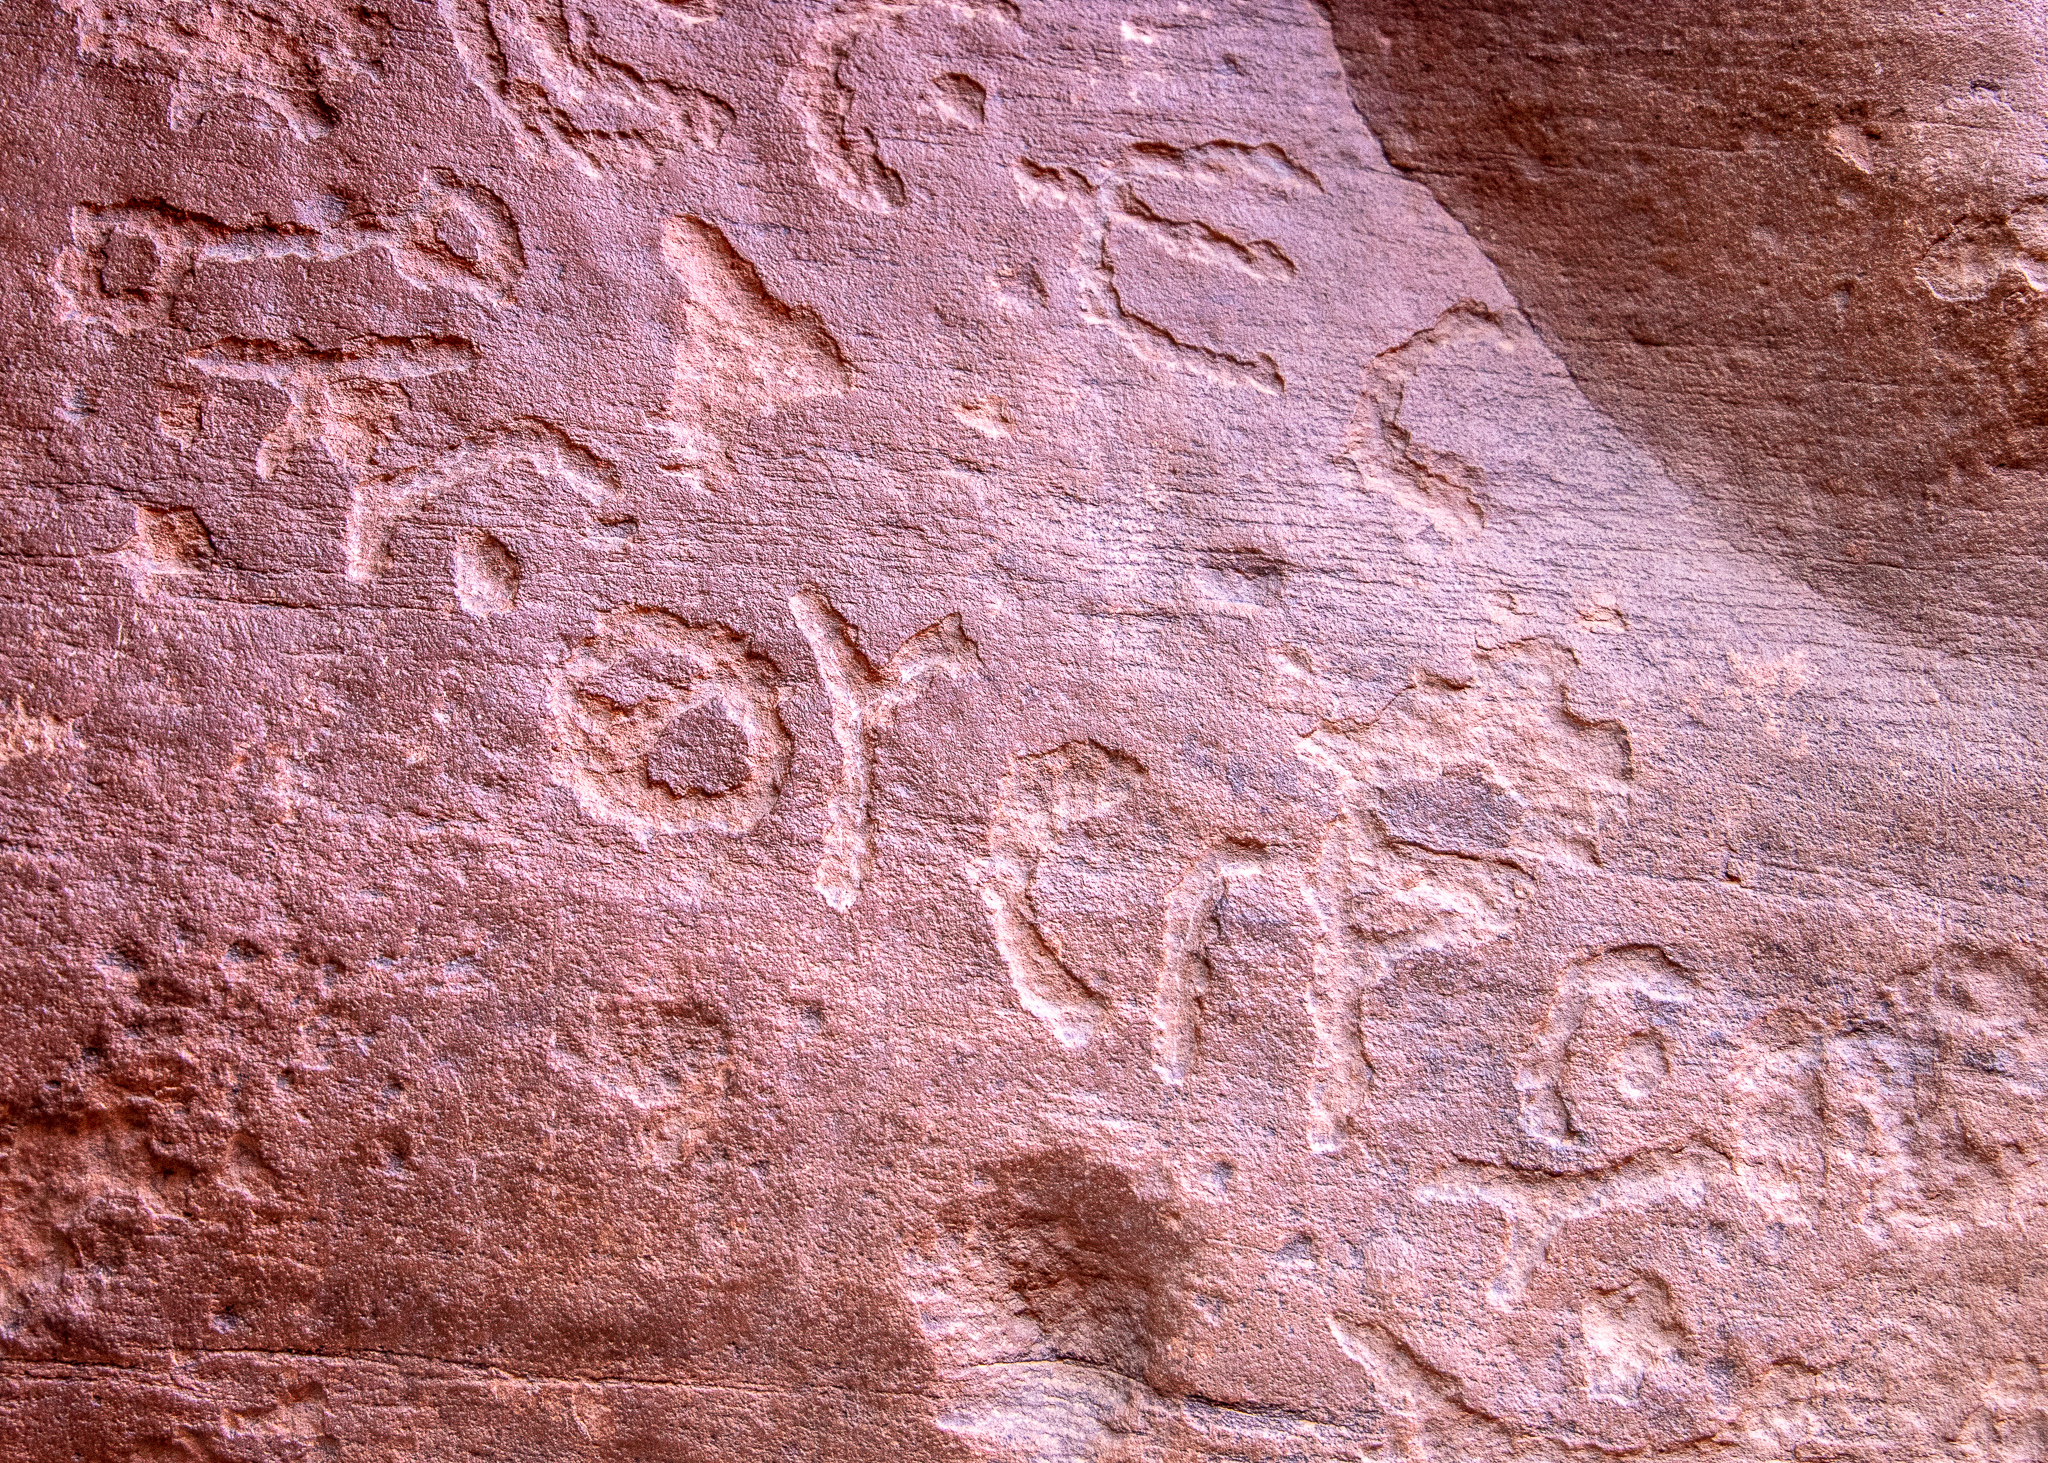 I think these are the Thamudic inscriptions